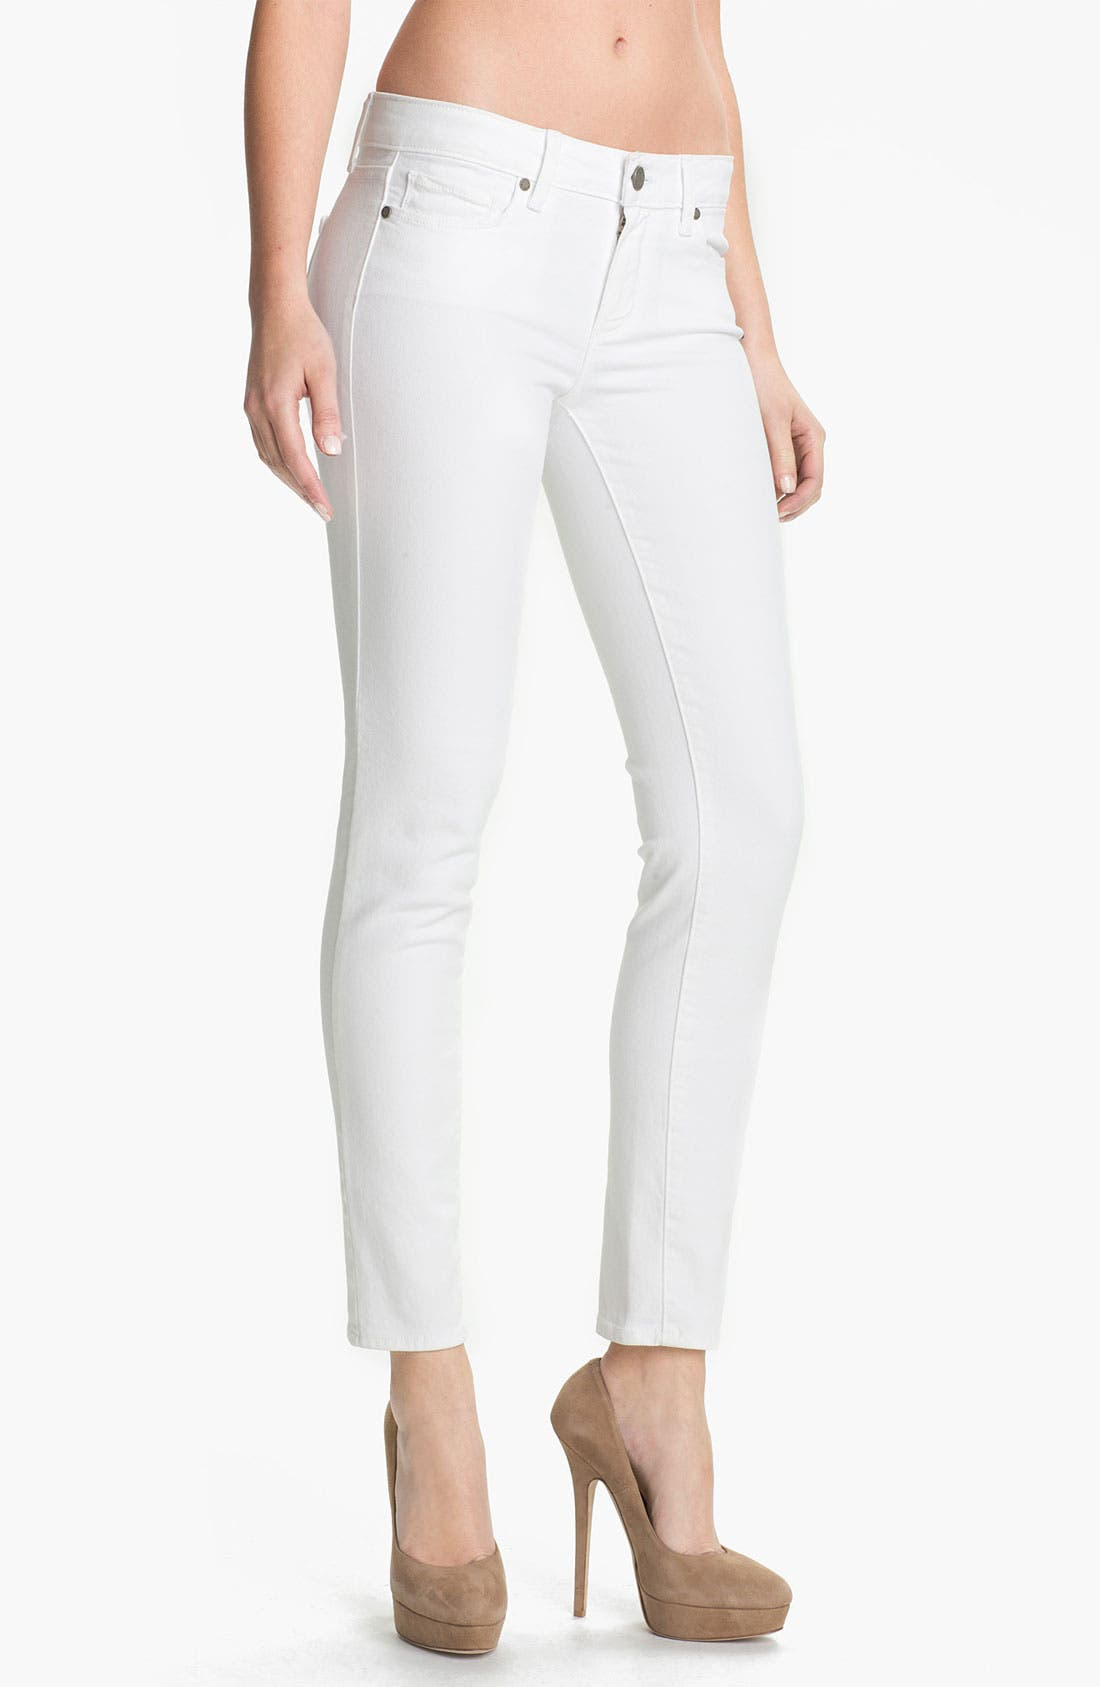 Alternate Image 1 Selected - PAIGE 'Skyline' Ankle Peg Skinny Jeans (Optic White)